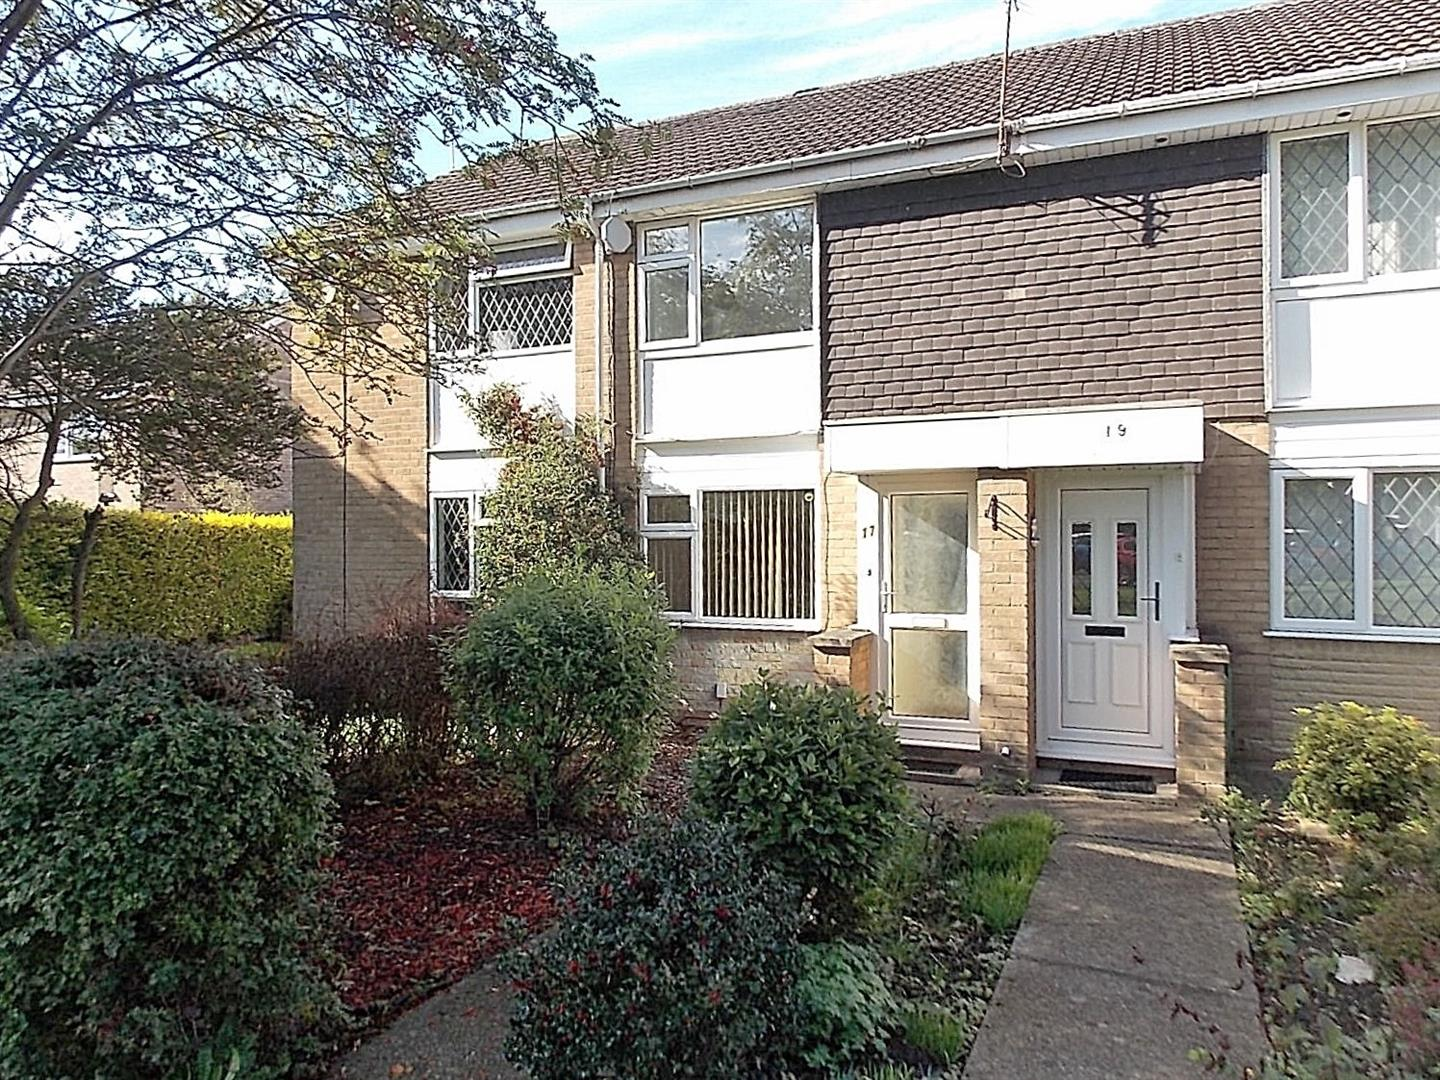 2 Bedrooms Terraced House for sale in Tynedale Close, Long Eaton